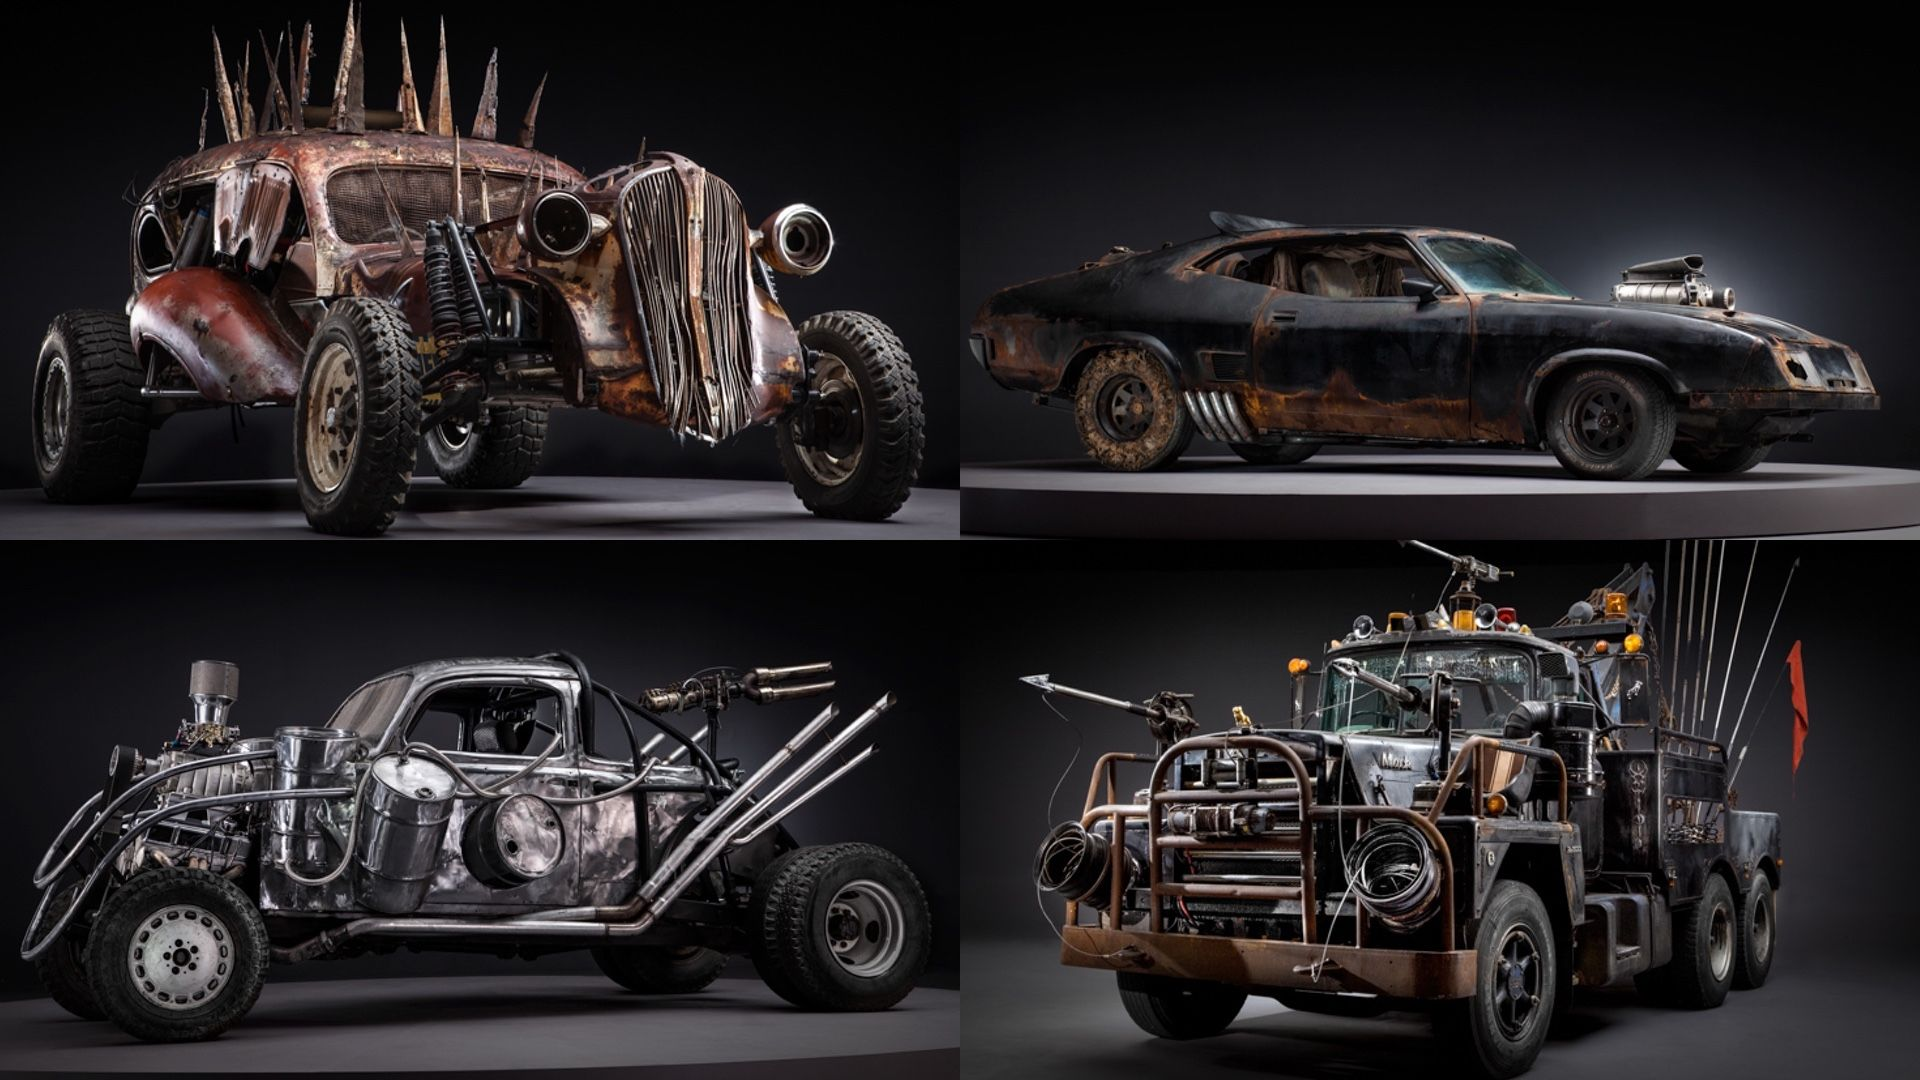 Stunning Photos Of The Badass Cars Of Mad Max Fury Road Before